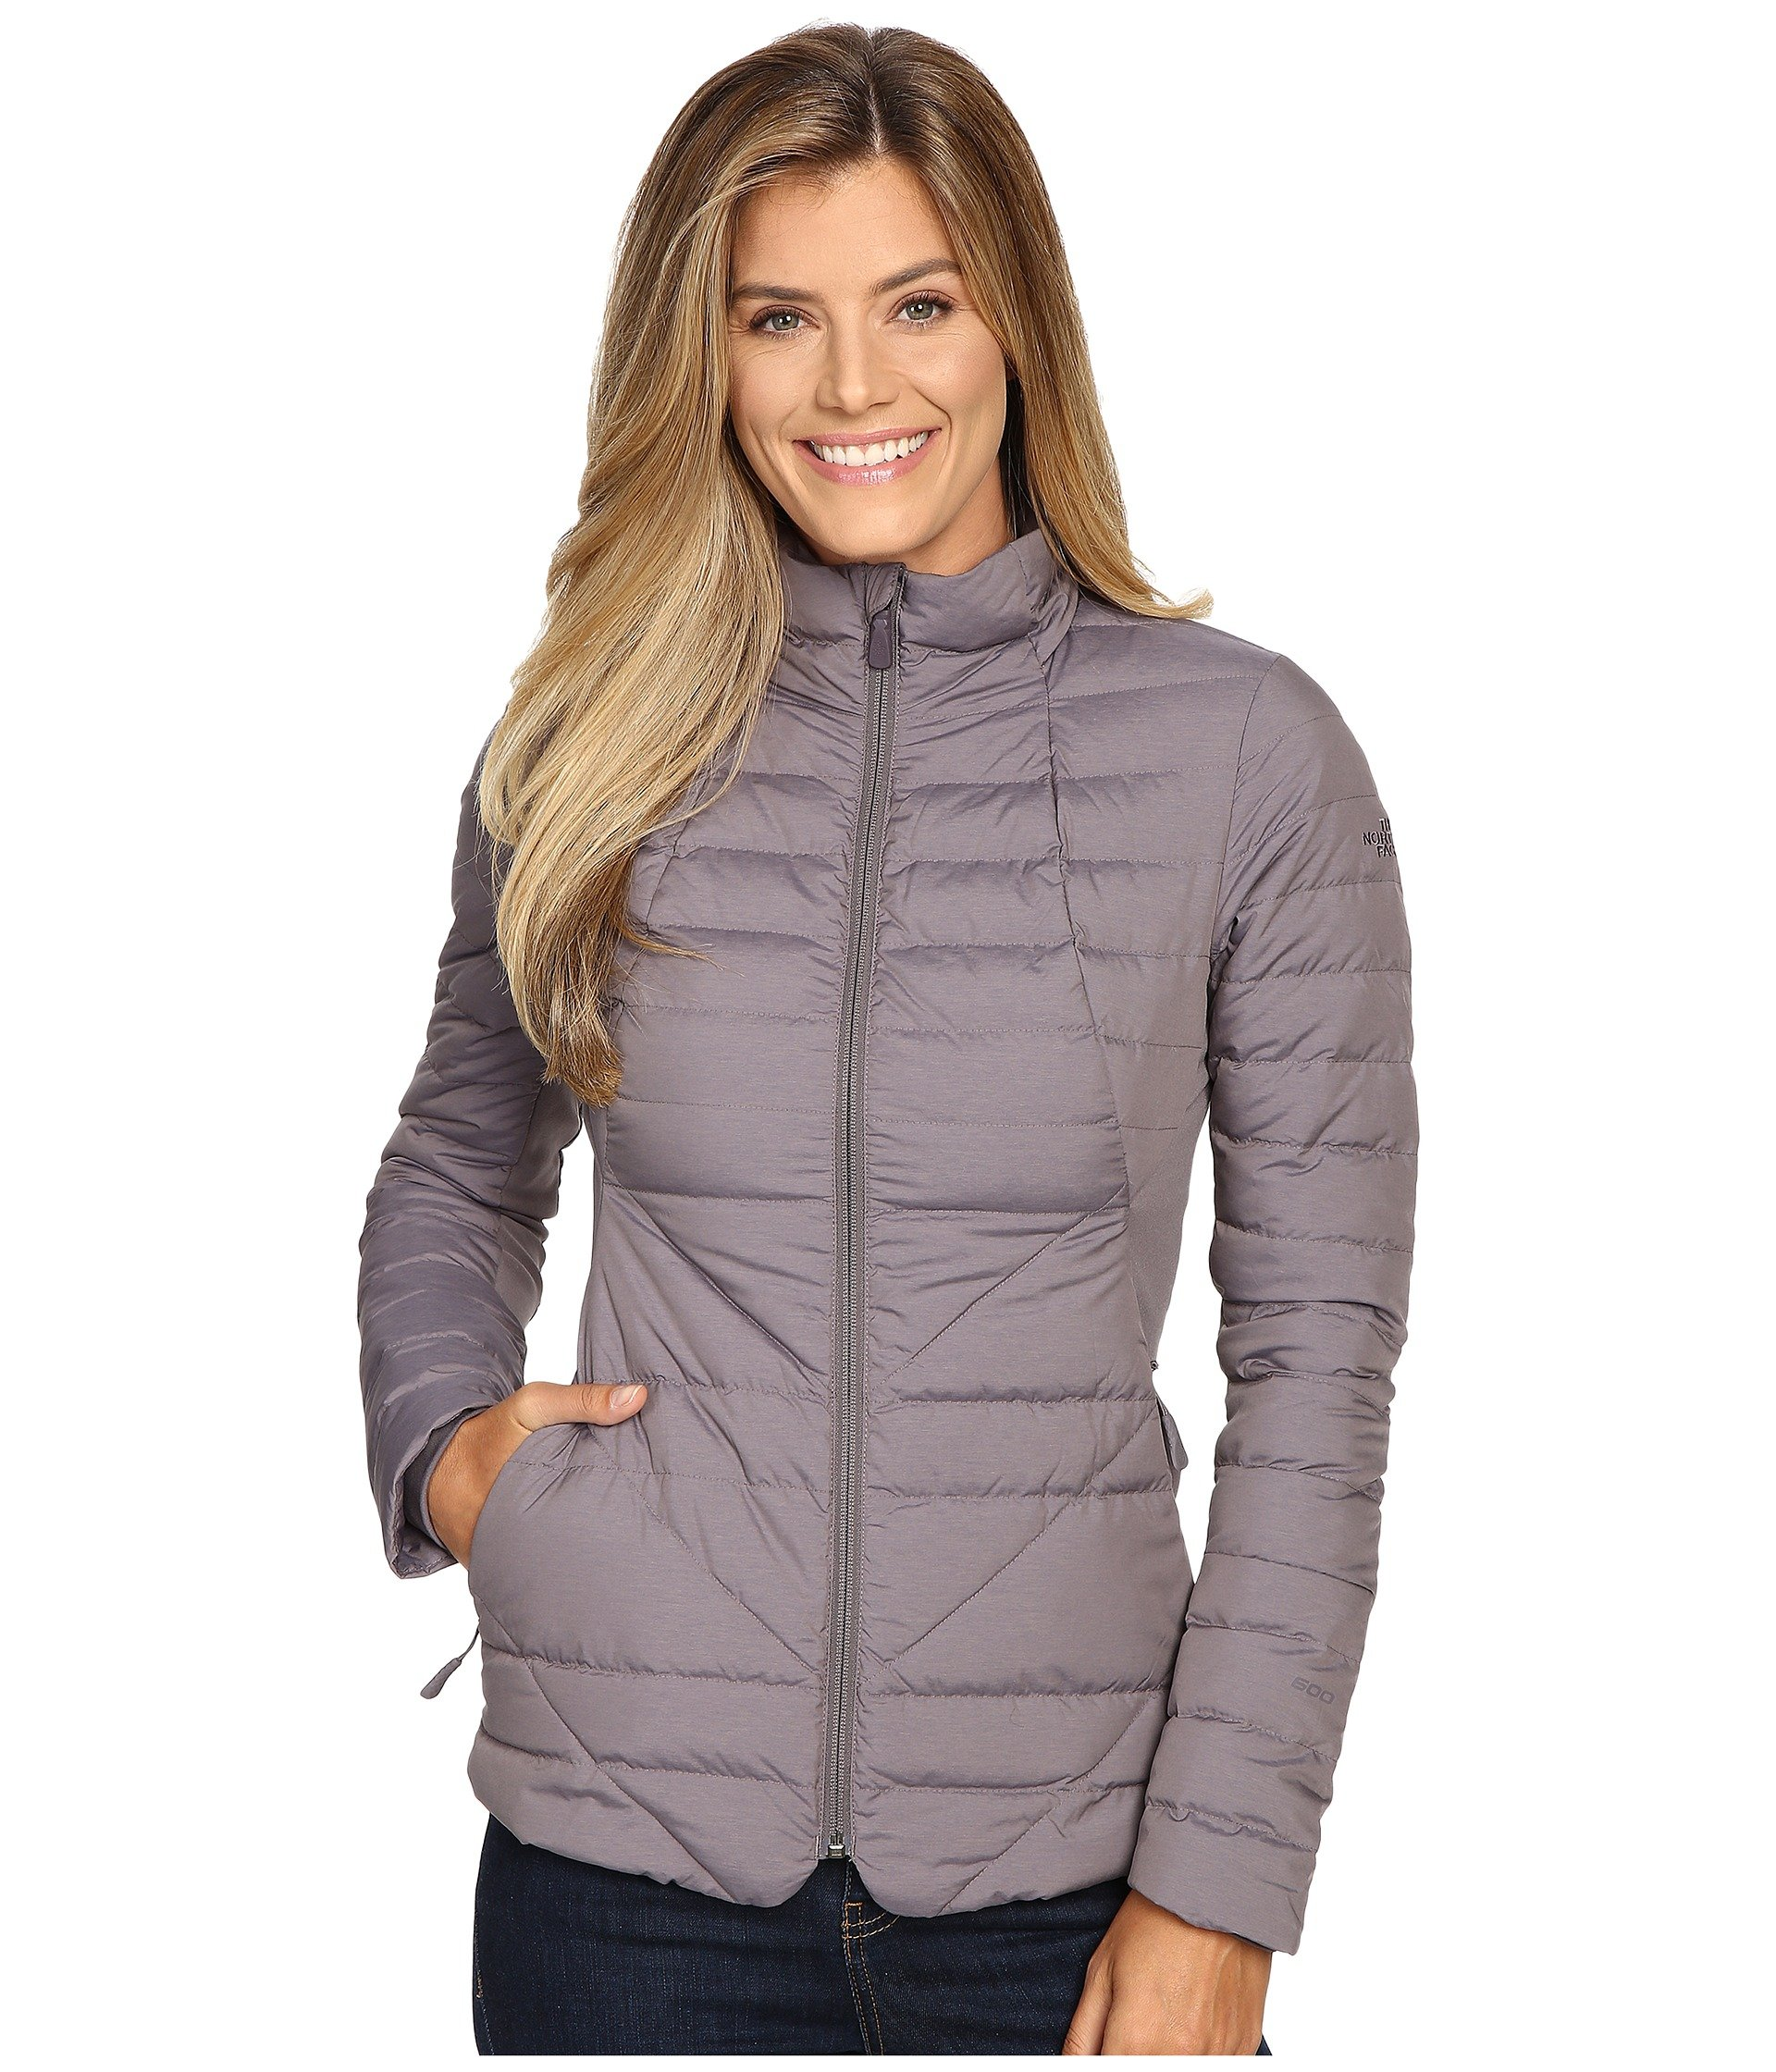 6393080af01e The North Face Lucia Hybrid Down Jacket